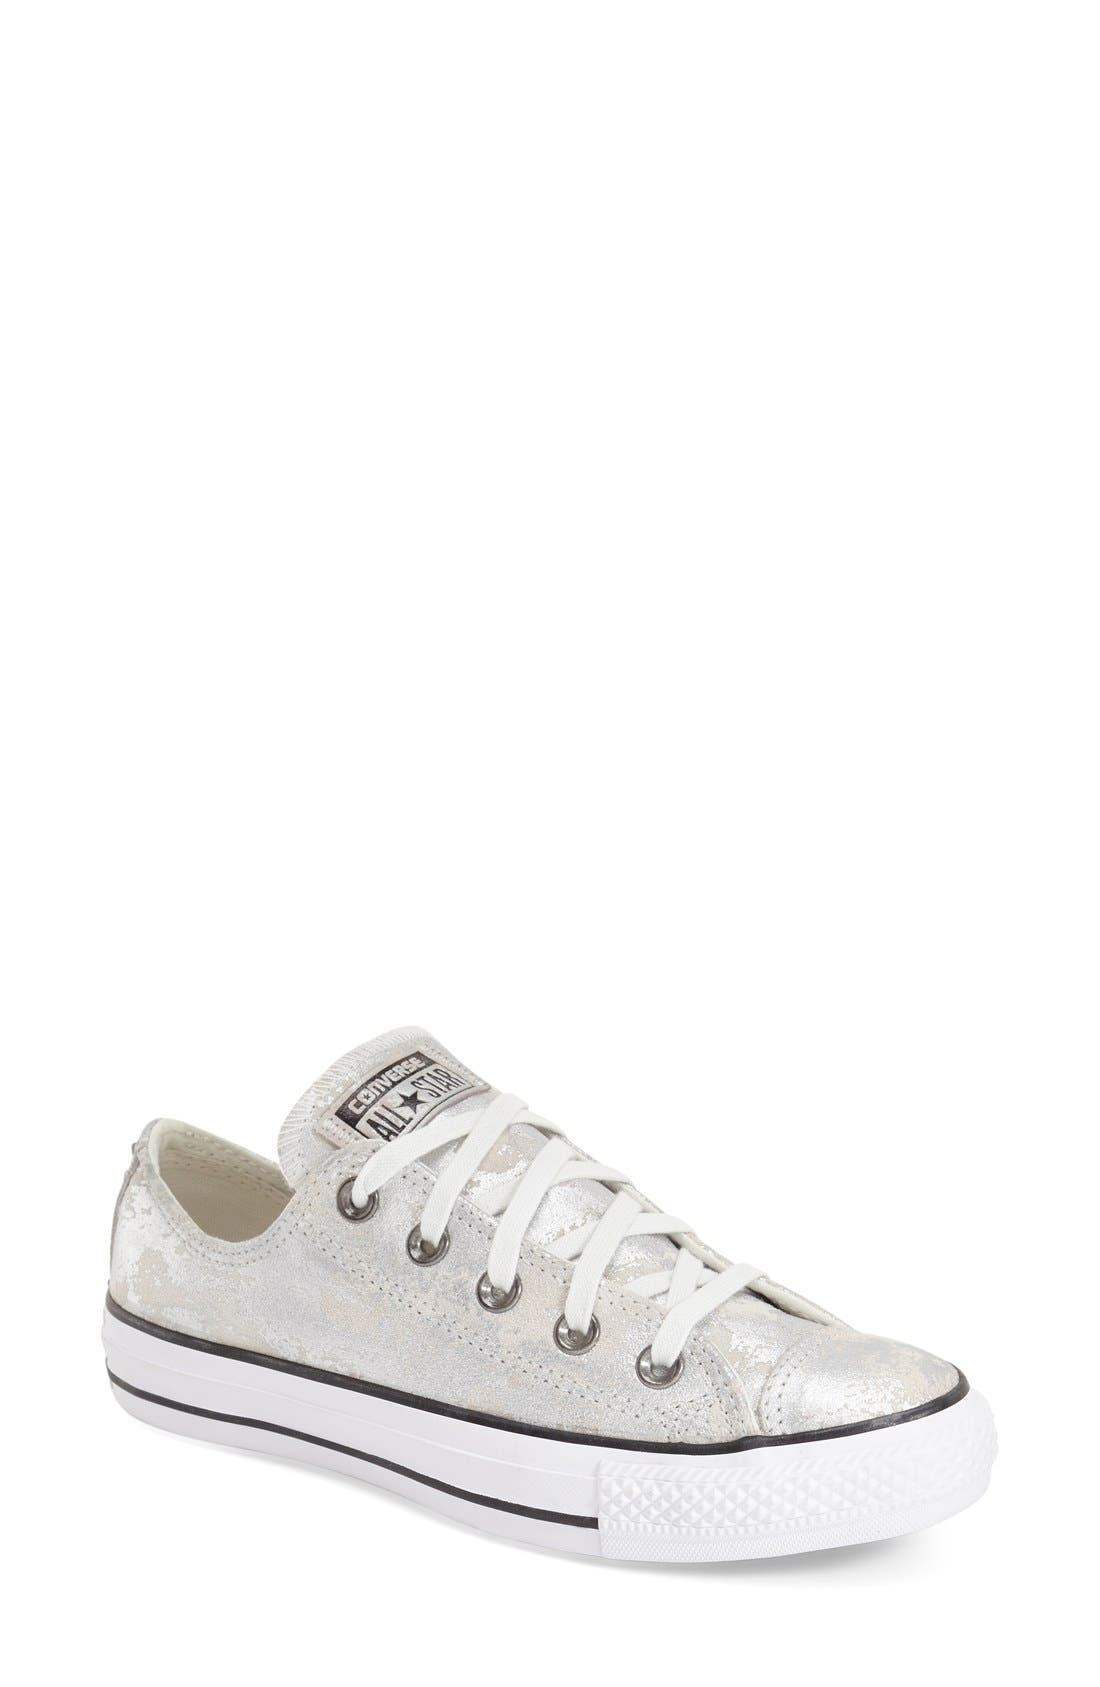 Alternate Image 1 Selected - Converse Chuck Taylor® All Star® 'Pyramid' Leather Sneaker (Women)